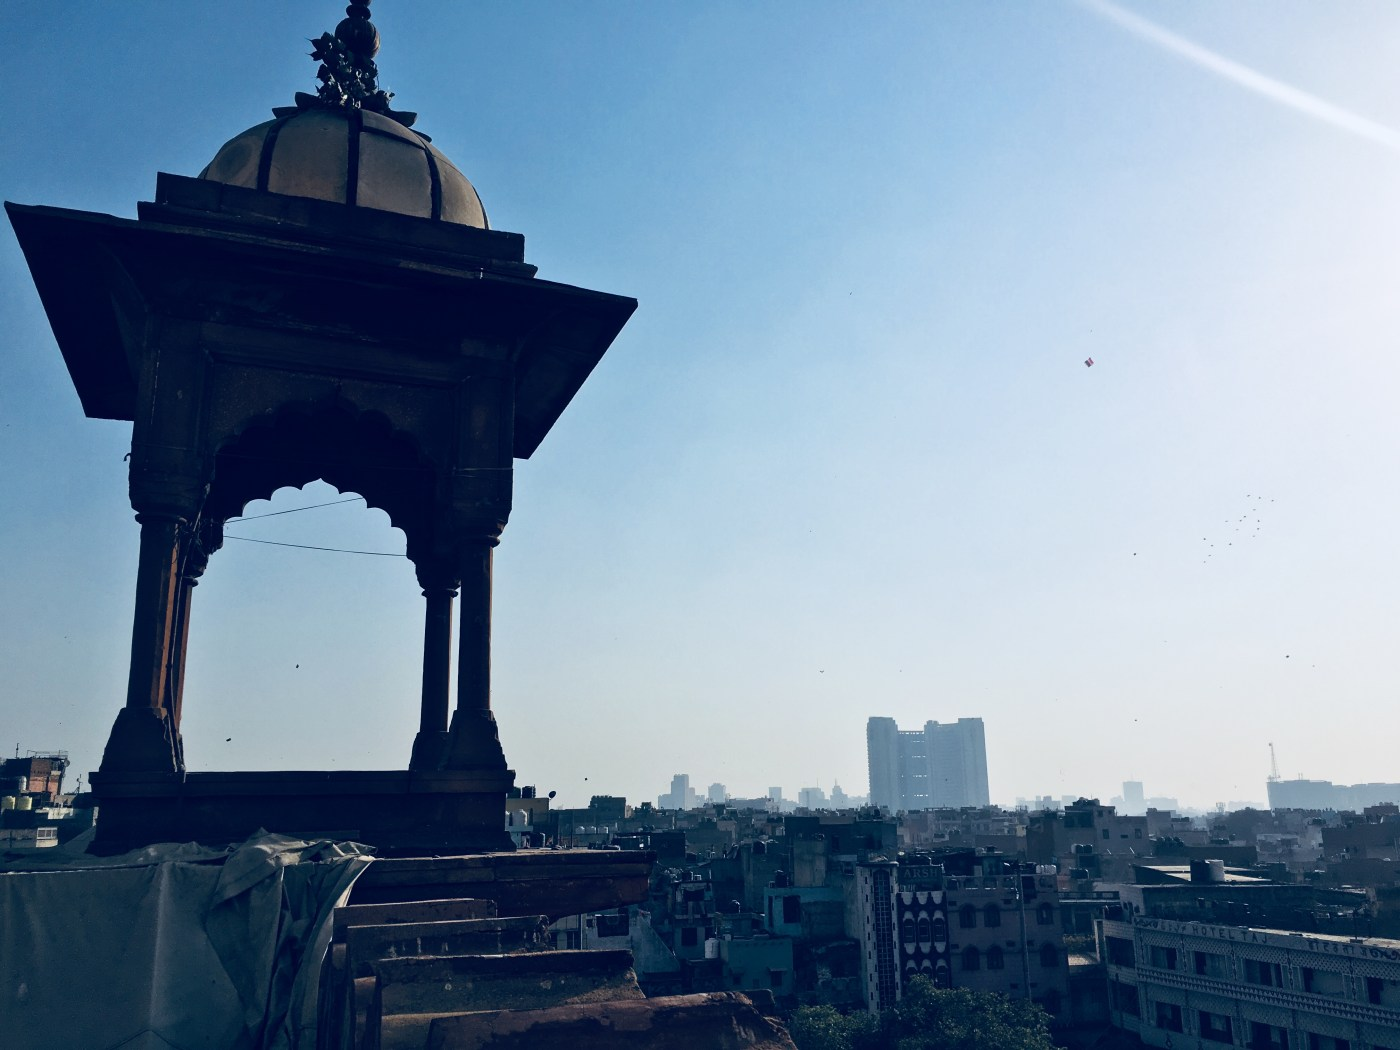 Views of Delhi from base of the Minaret of Jama Masjid | The largest mosque in India